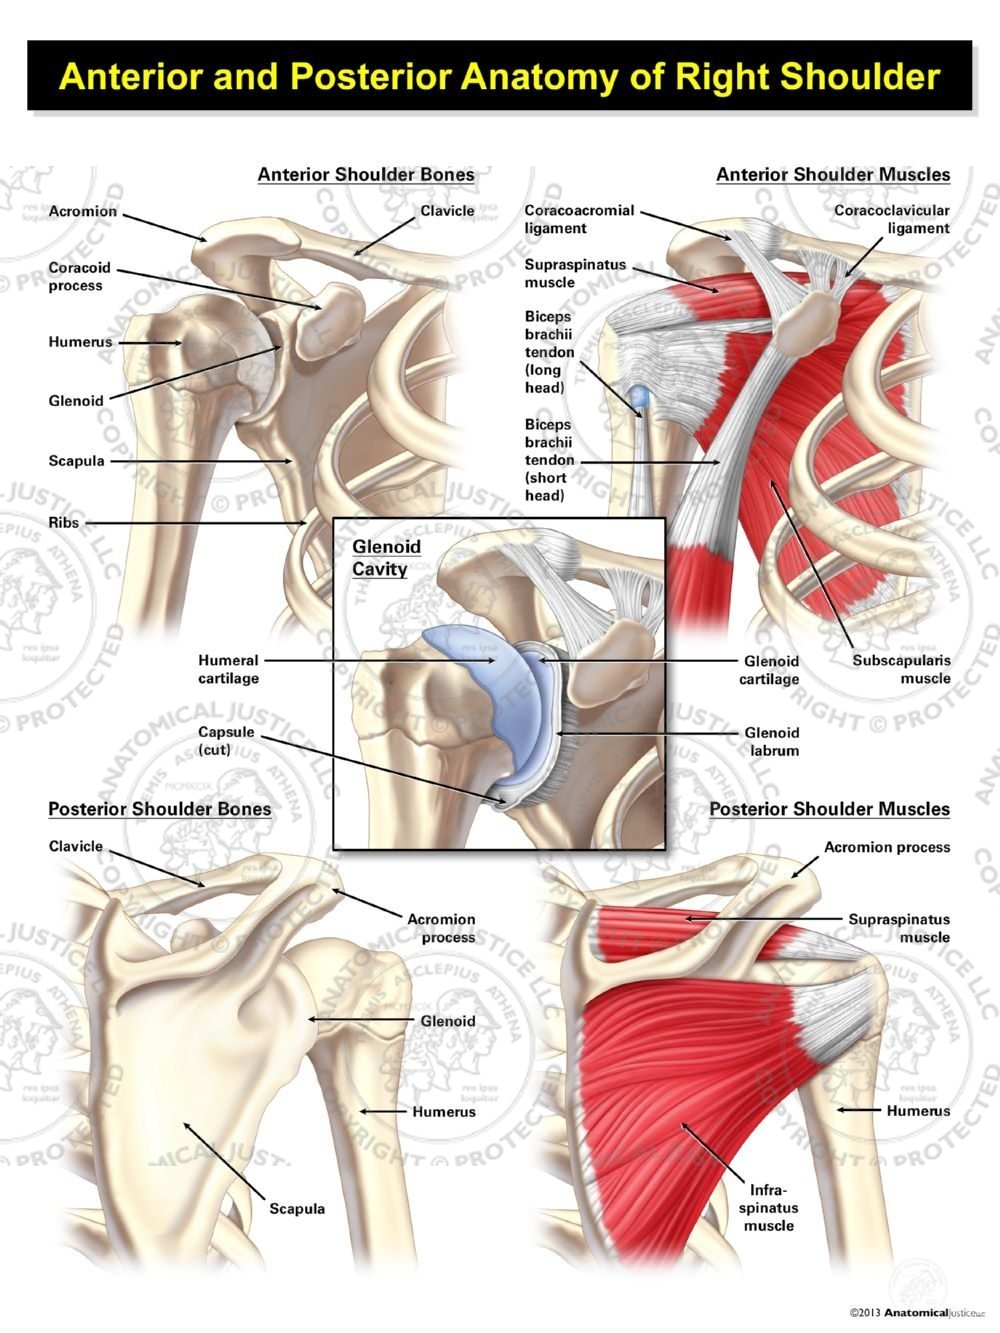 Anterior And Posterior Anatomy Of The Right Shoulder Anatomical